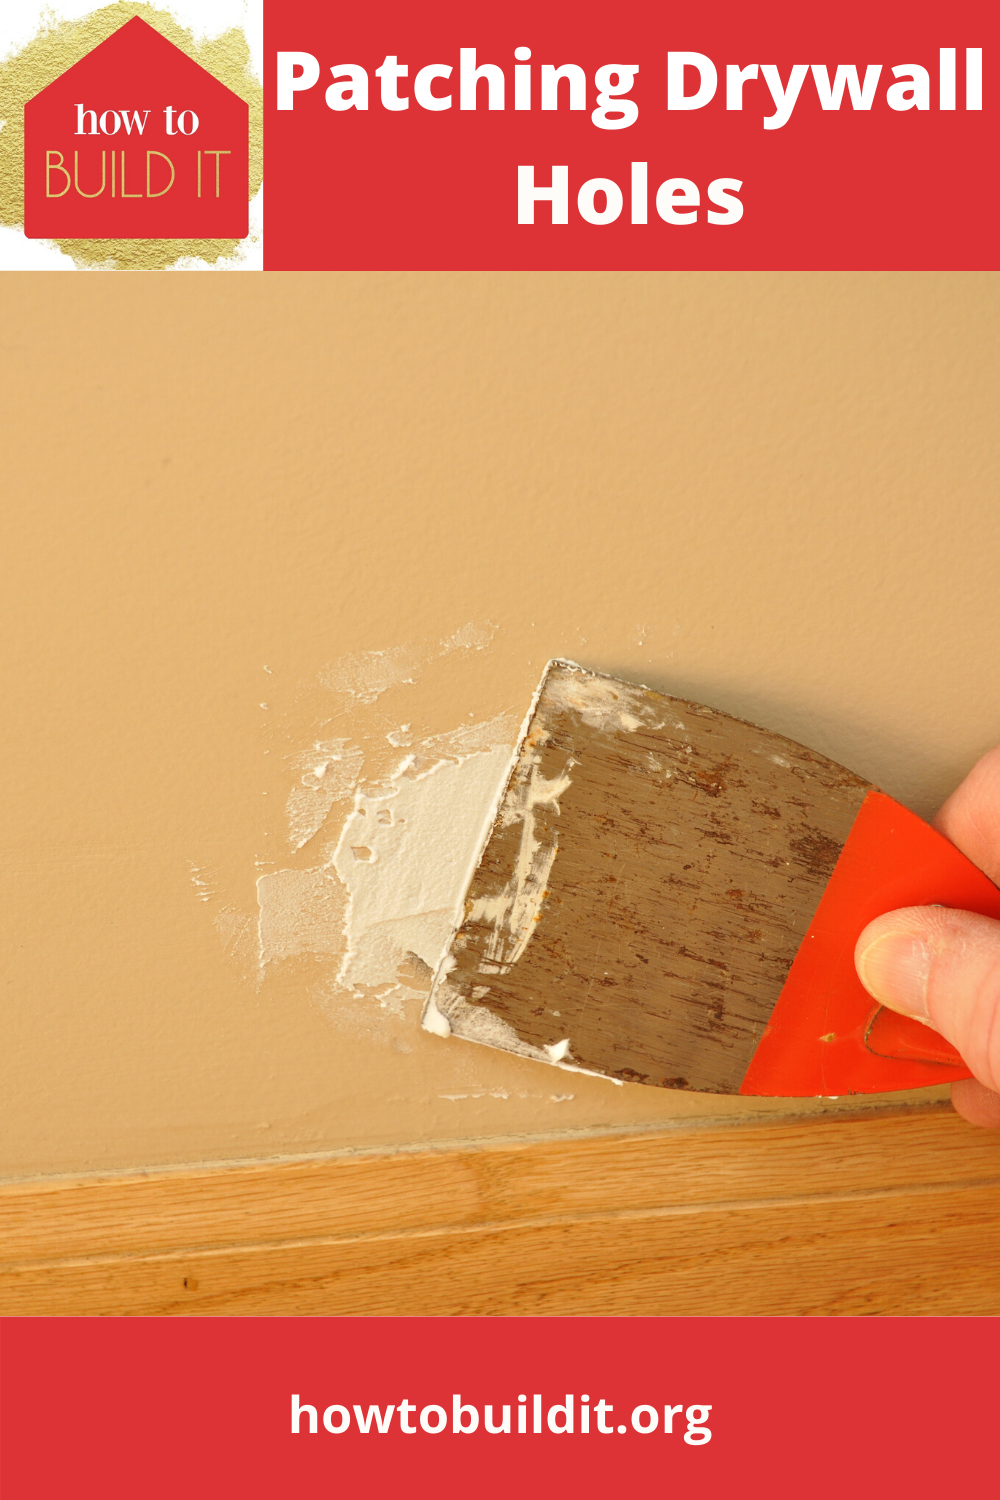 Have you been wanting to patch the drywall holes where the kids missed the soccer ball and kicked a small hole in the wall? I bet you have but have been resistant because you were'nt sure how to do it. No worries. Our simple guide to patching drywall will solve that. #stepbysteppatchingdrywall #homerepairs #howtopatchdrywall #howtobuilditblog